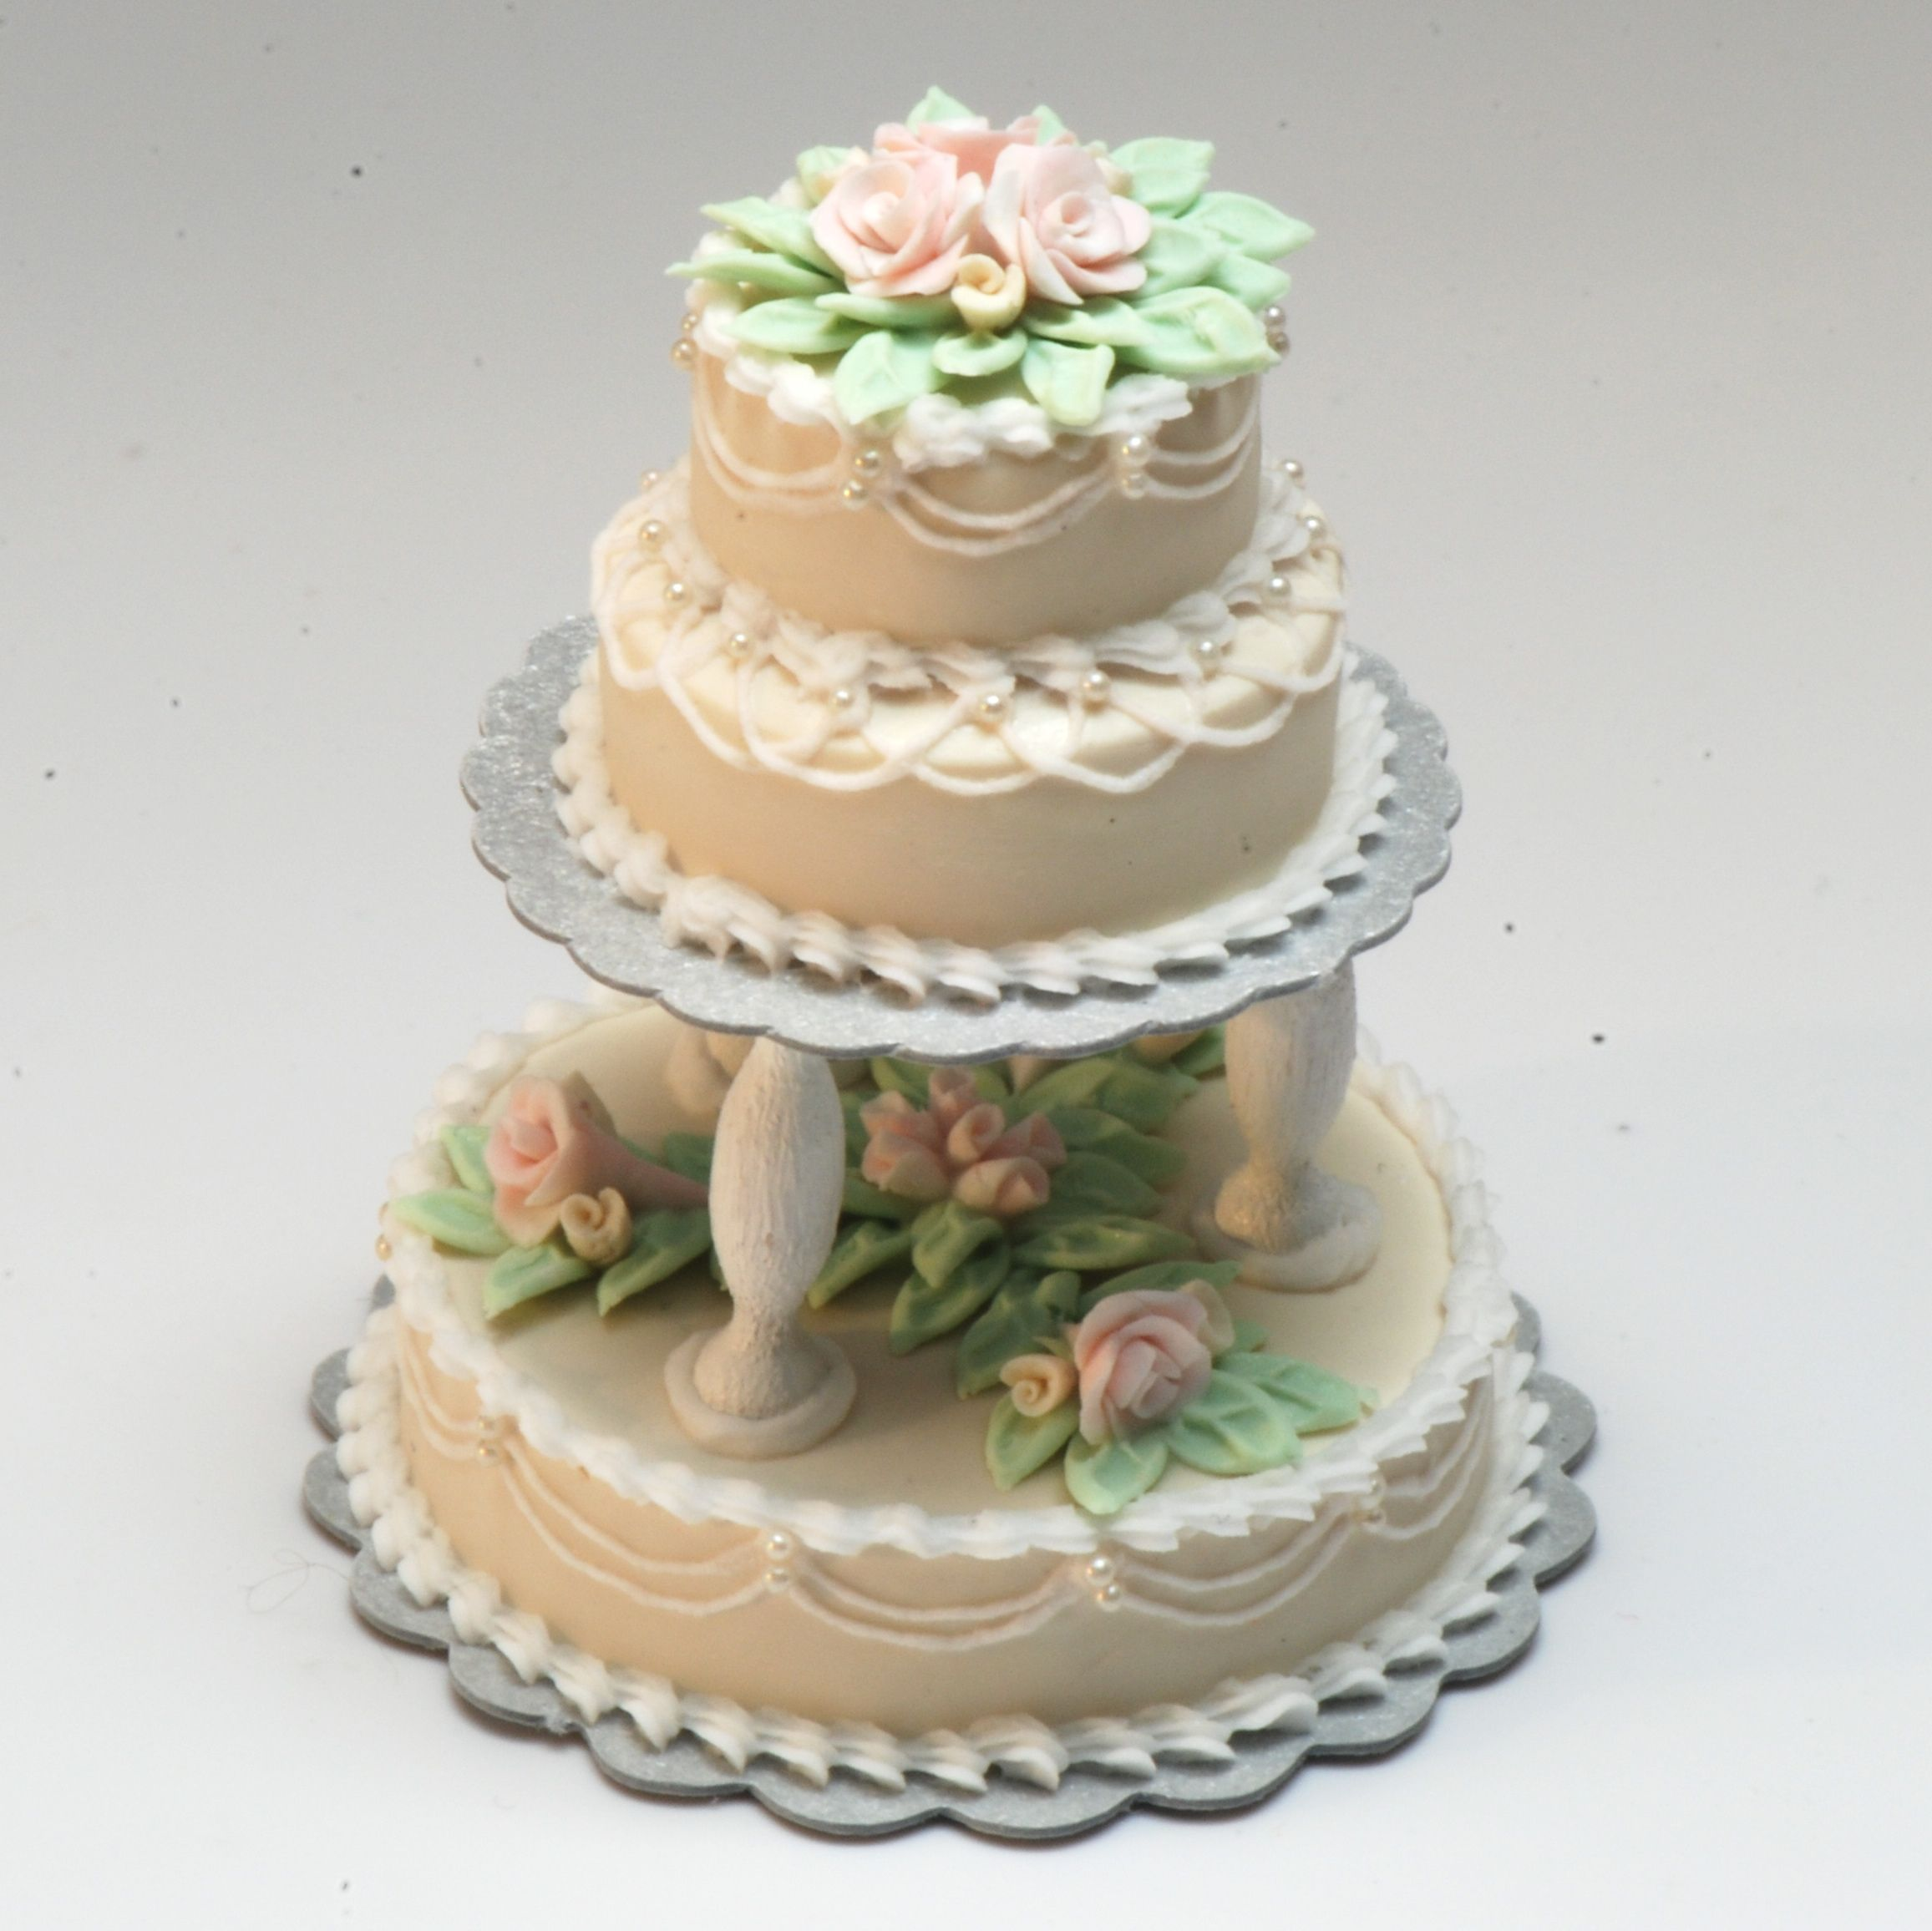 3 Tier Wedding Cake Make Decoration And Baking Easy With These Tins